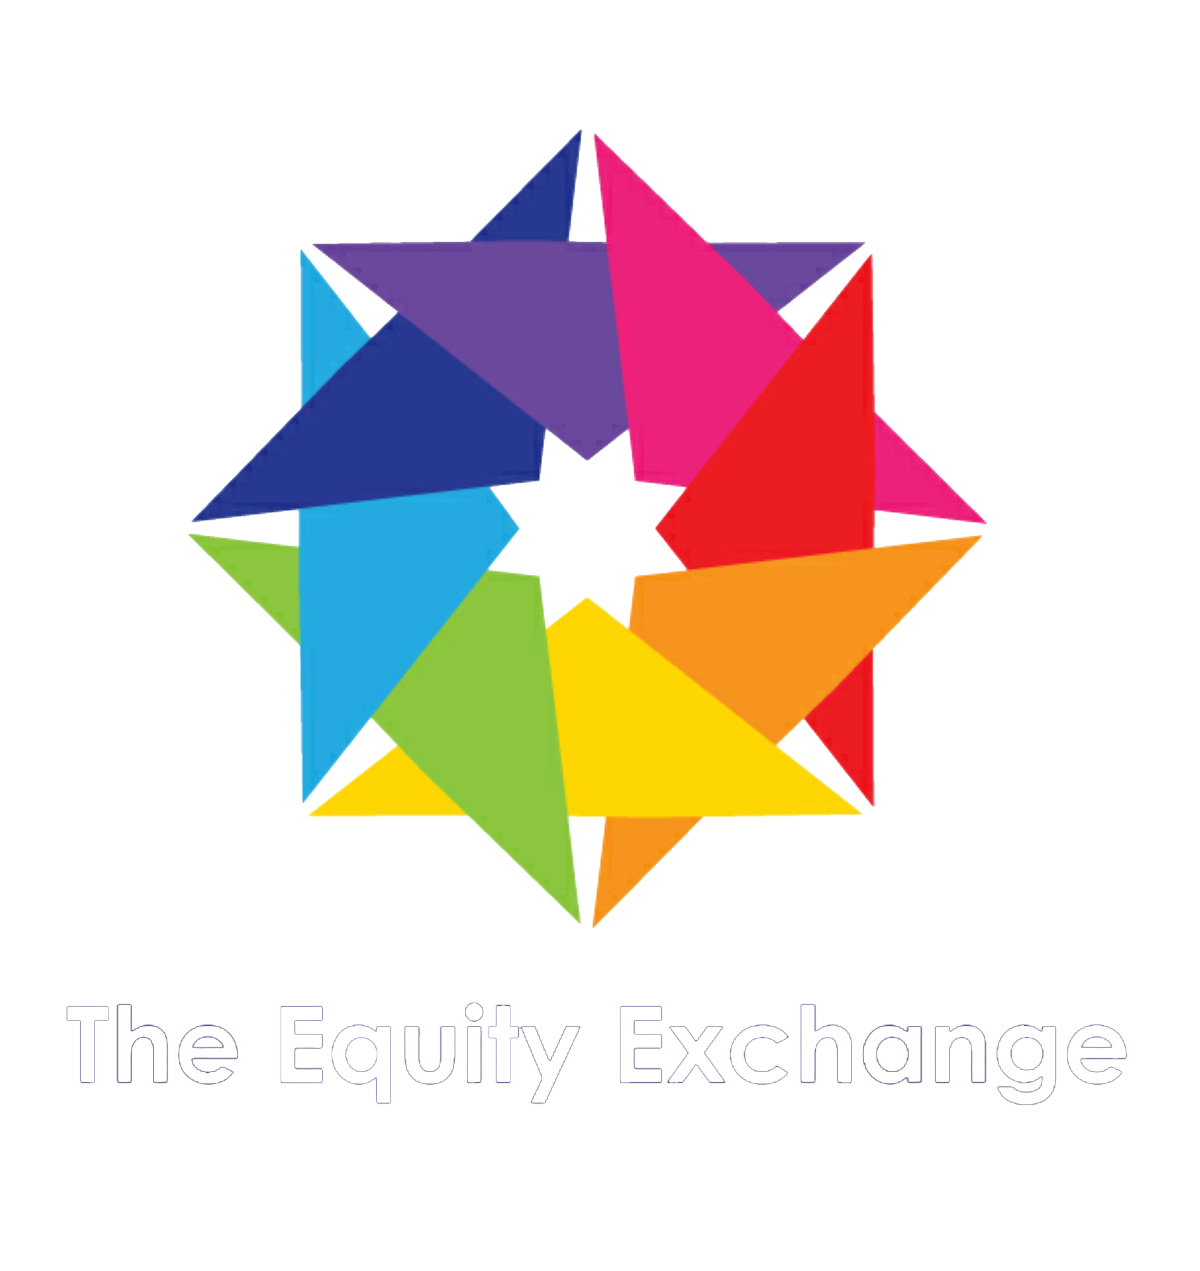 The Equity Exchange